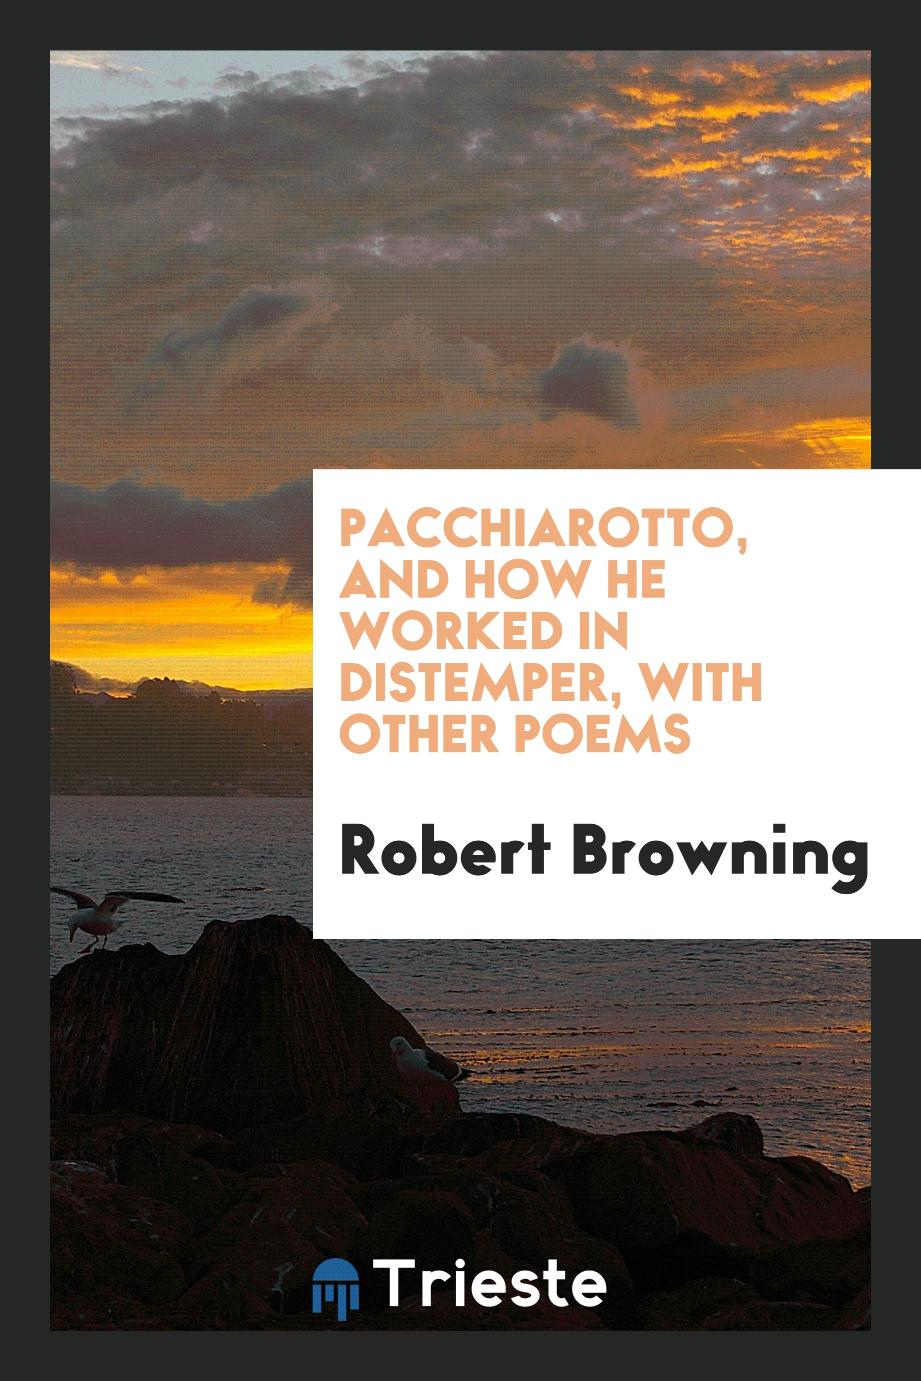 Pacchiarotto, and how he worked in distemper, with other poems